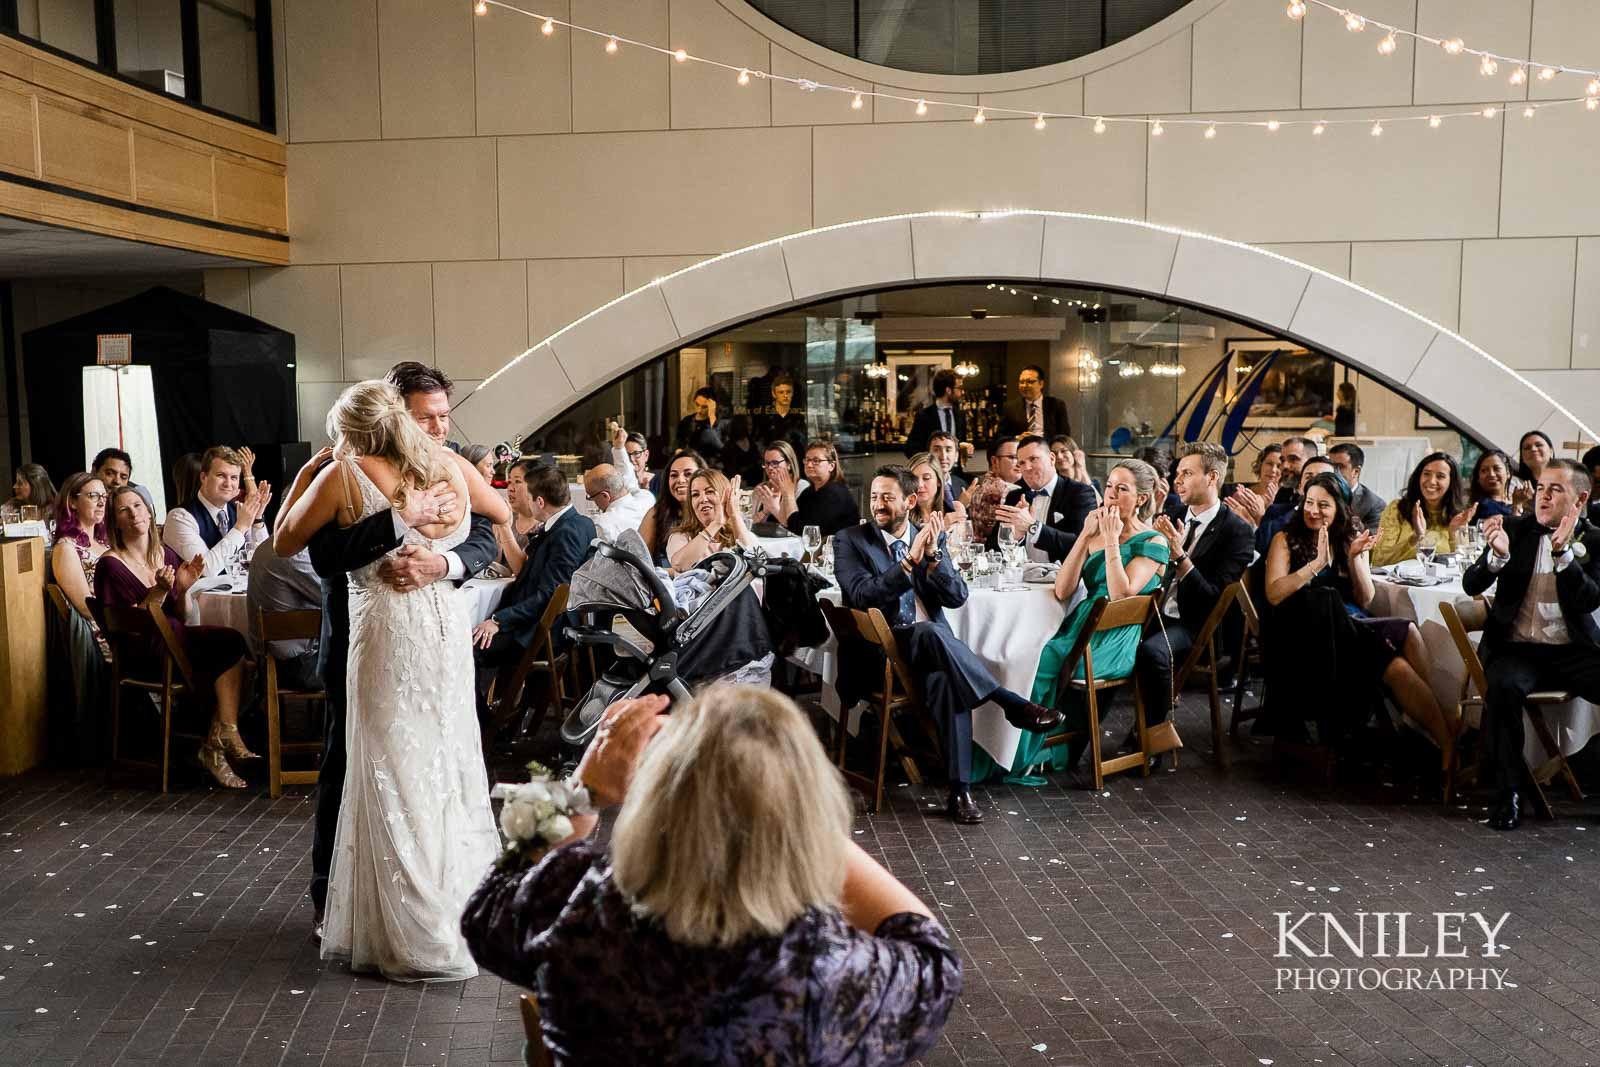 65-Max-of-Eastman-Wedding-and-Reception-Rochester-NY-Kniley-Photography.jpg